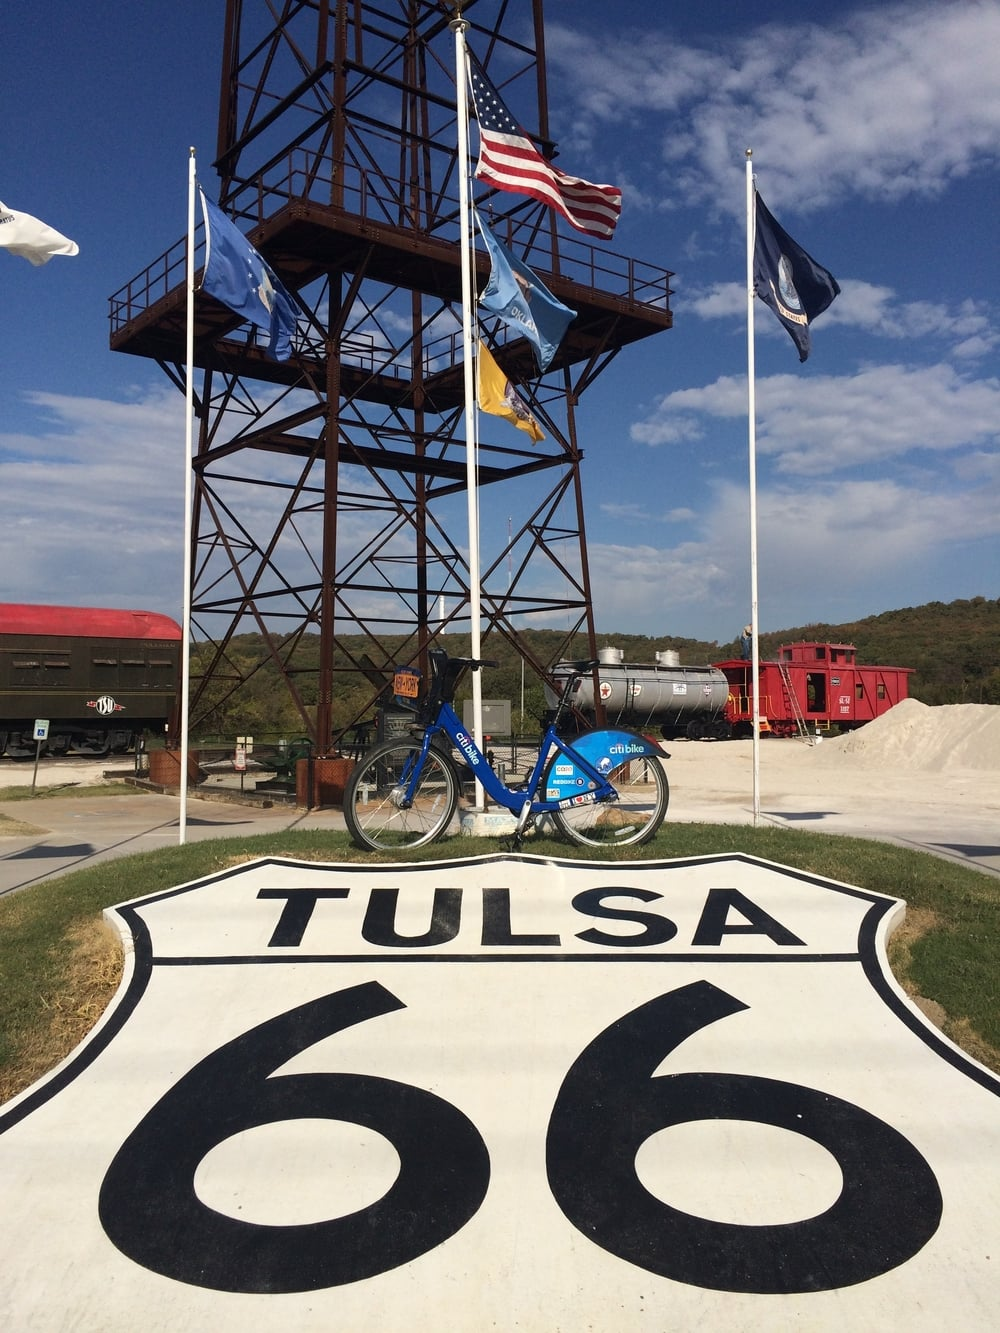 With fewer than 100 miles to the Pacific, Tulsa looks likely to capture the title for my favorite place.